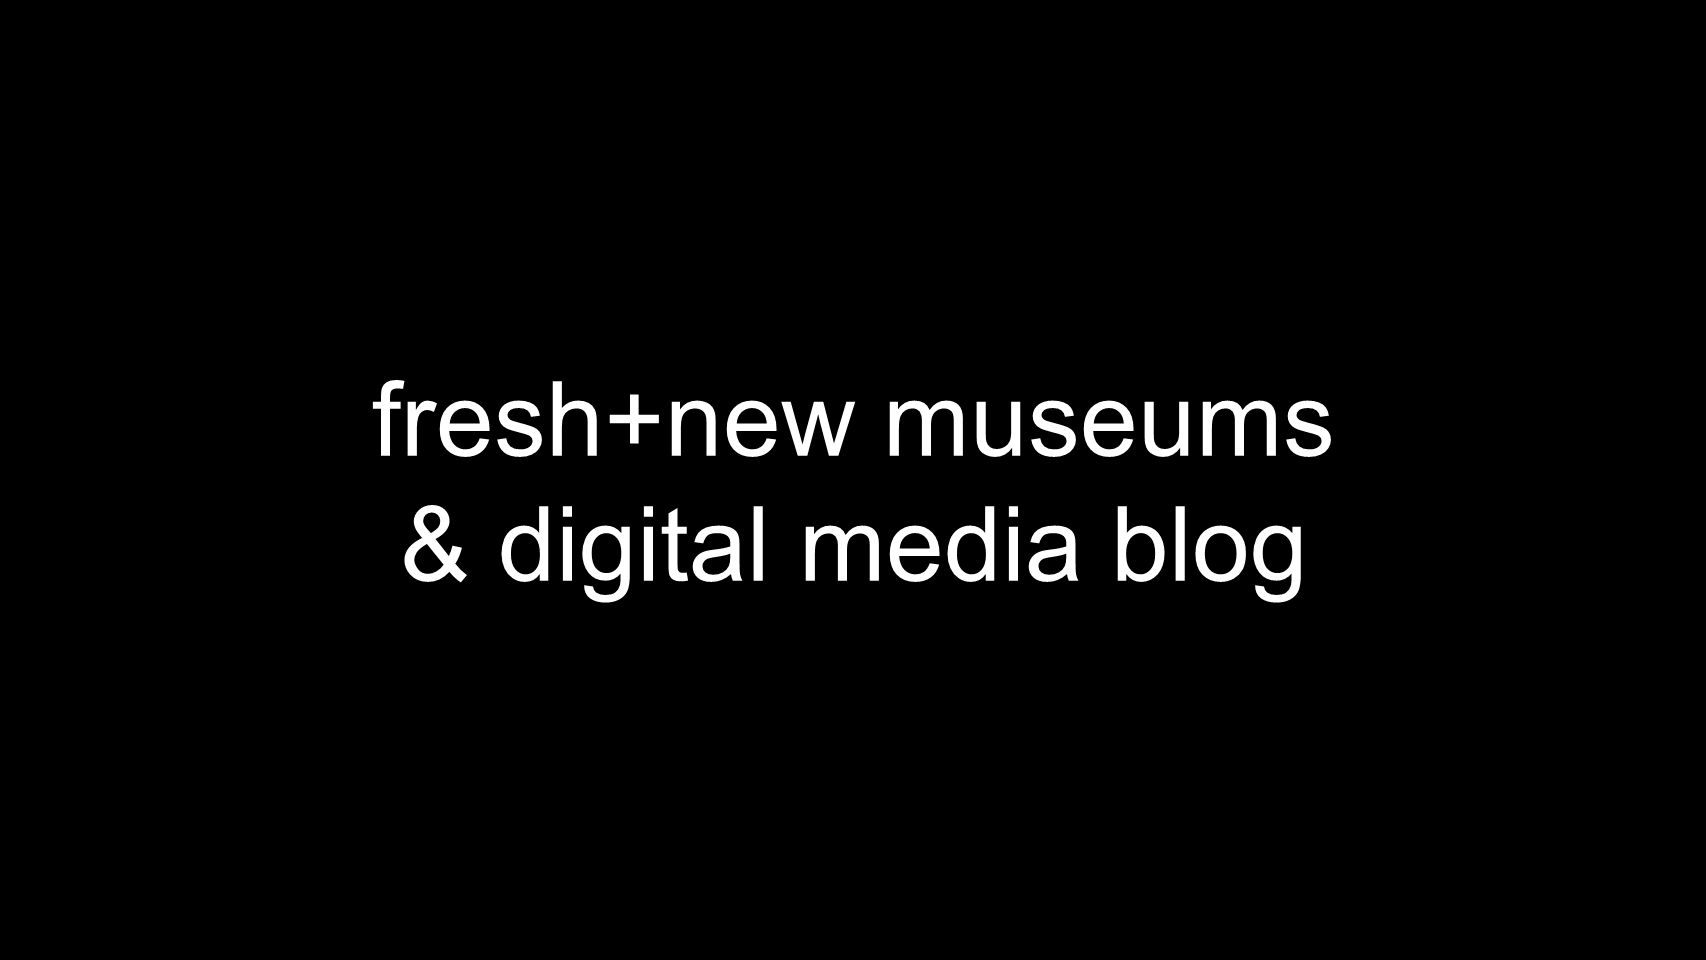 fresh+new museums & digital media blog